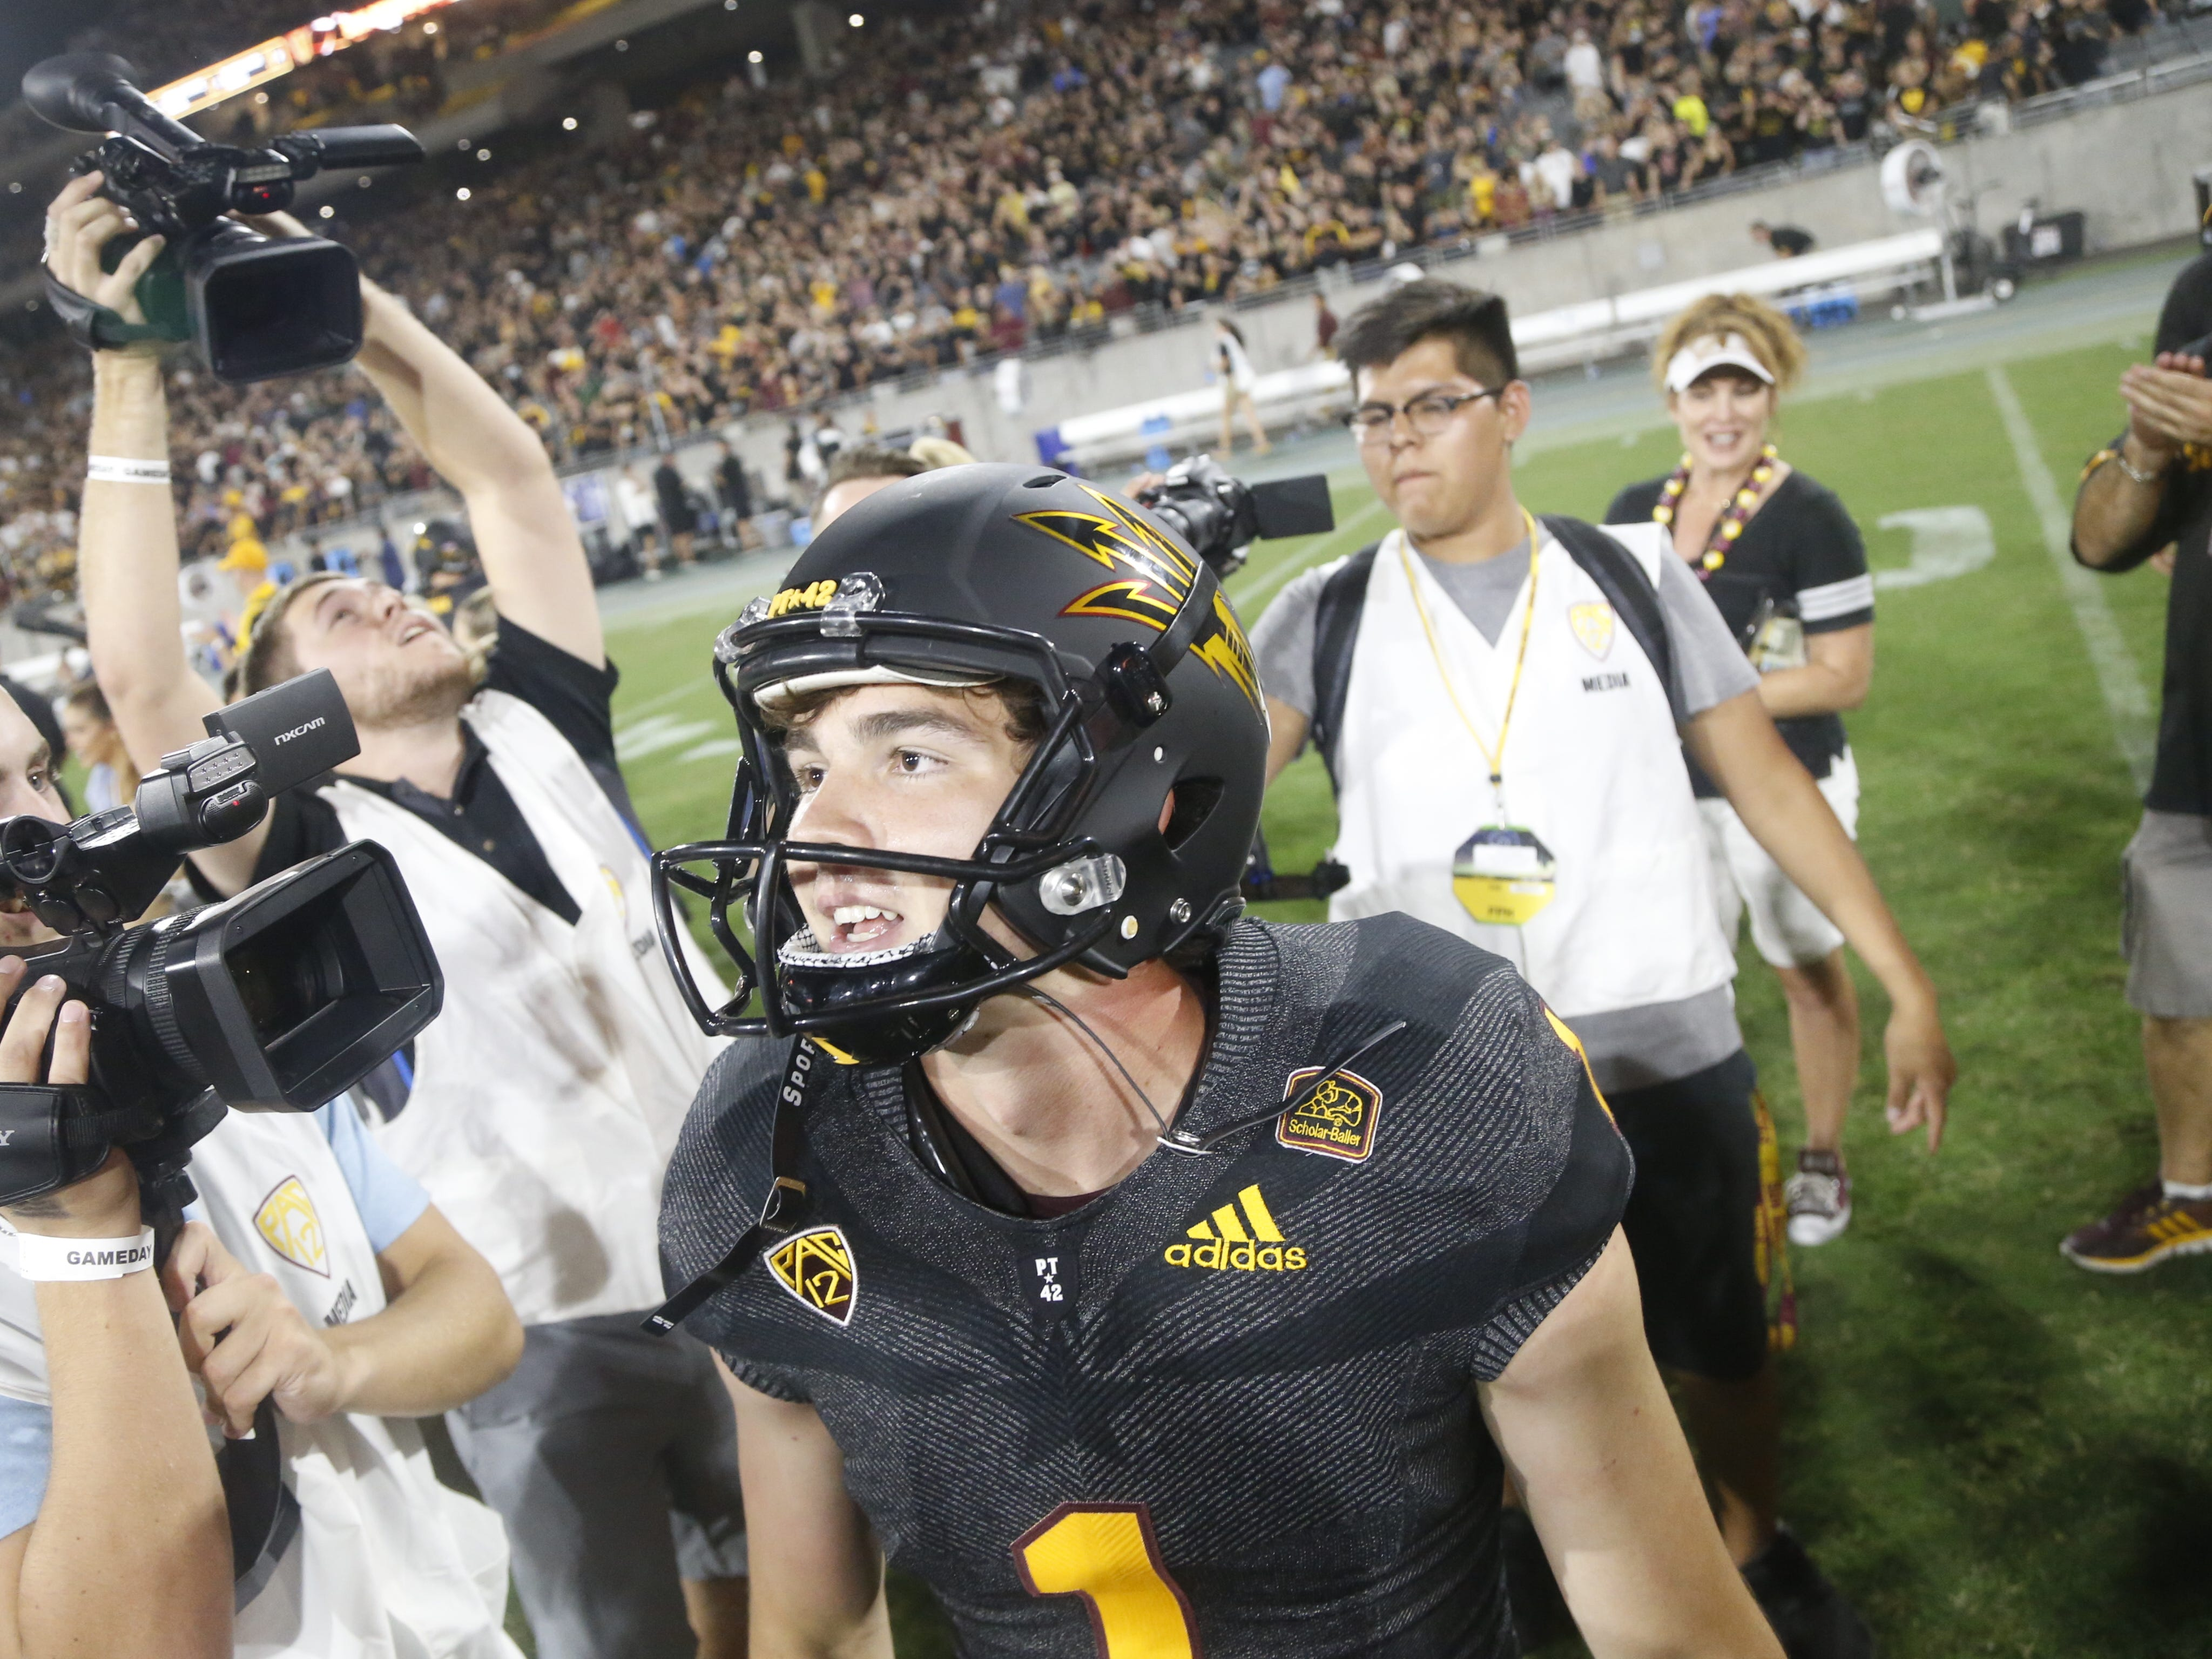 Arizona State Sun Devils kicker Brandon Ruiz (1) celebrates after kicking the game-winning field goal defeating Michigan State 16-13 at Sun Devil Stadium in Tempe, Ariz. on Sept. 8, 2018.